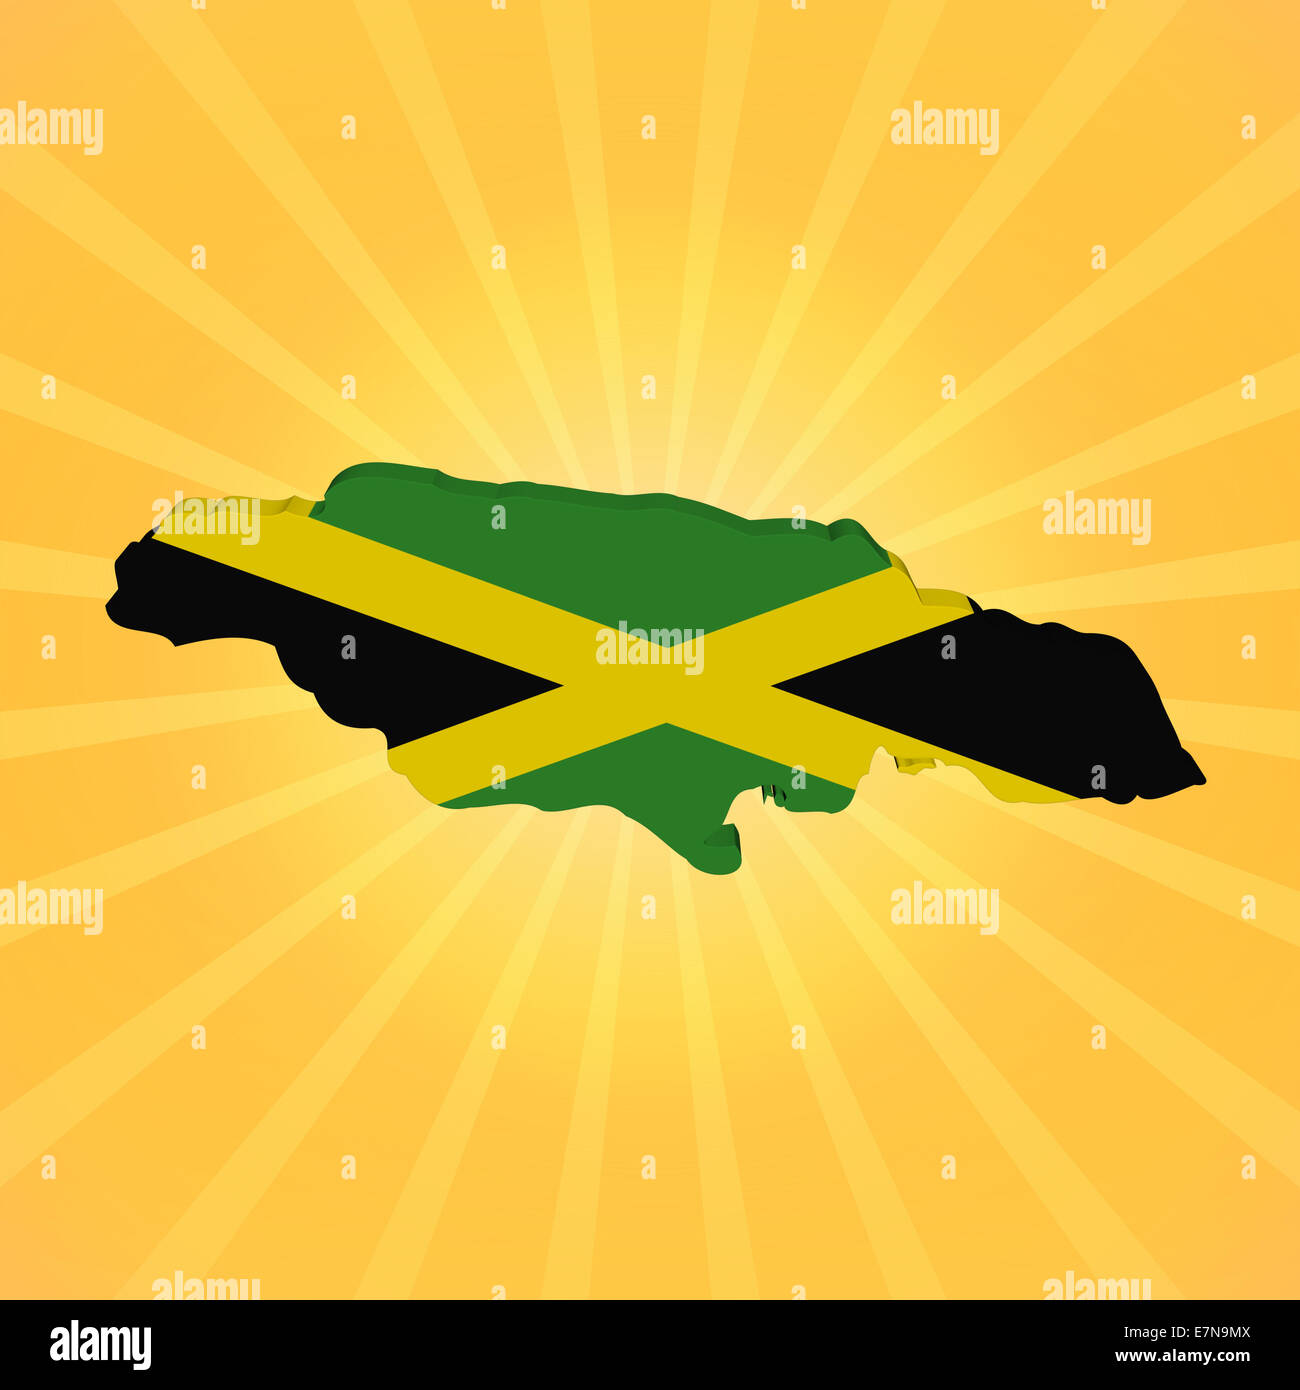 3f94cb0b1 Abstract Flag On Jamaica Map Stock Photos & Abstract Flag On Jamaica ...